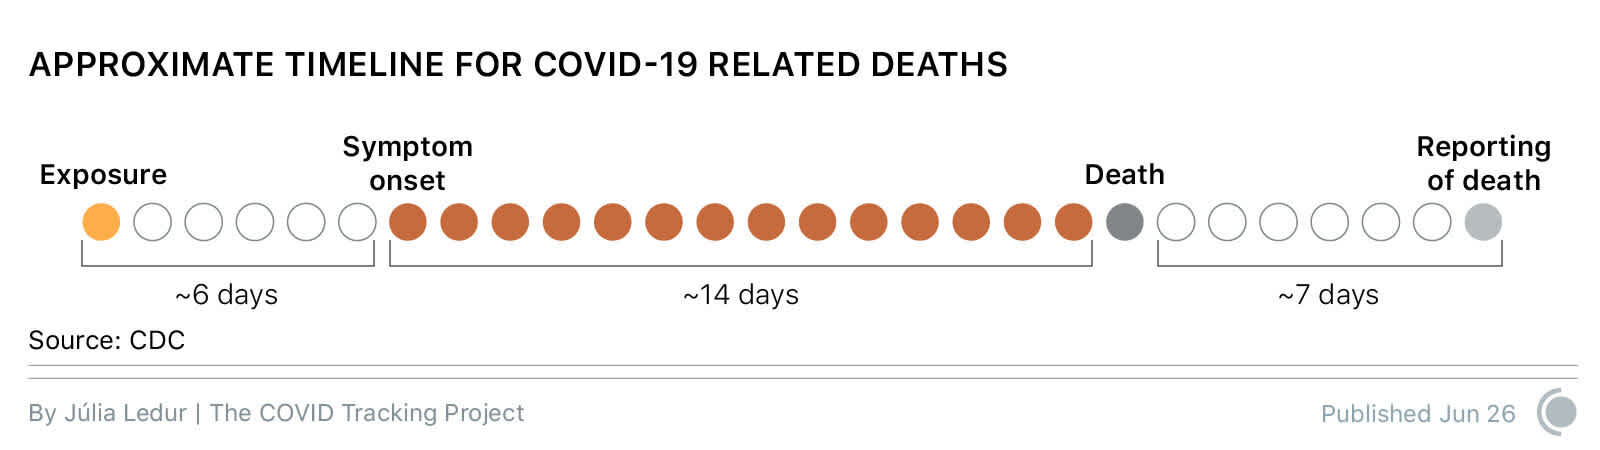 Graphic illustrating the ~6 day delay between exposure and onset, the average ~14 day delay between onset and death for those who die of COVID-19, and the ~7 day delay in reporting the death.